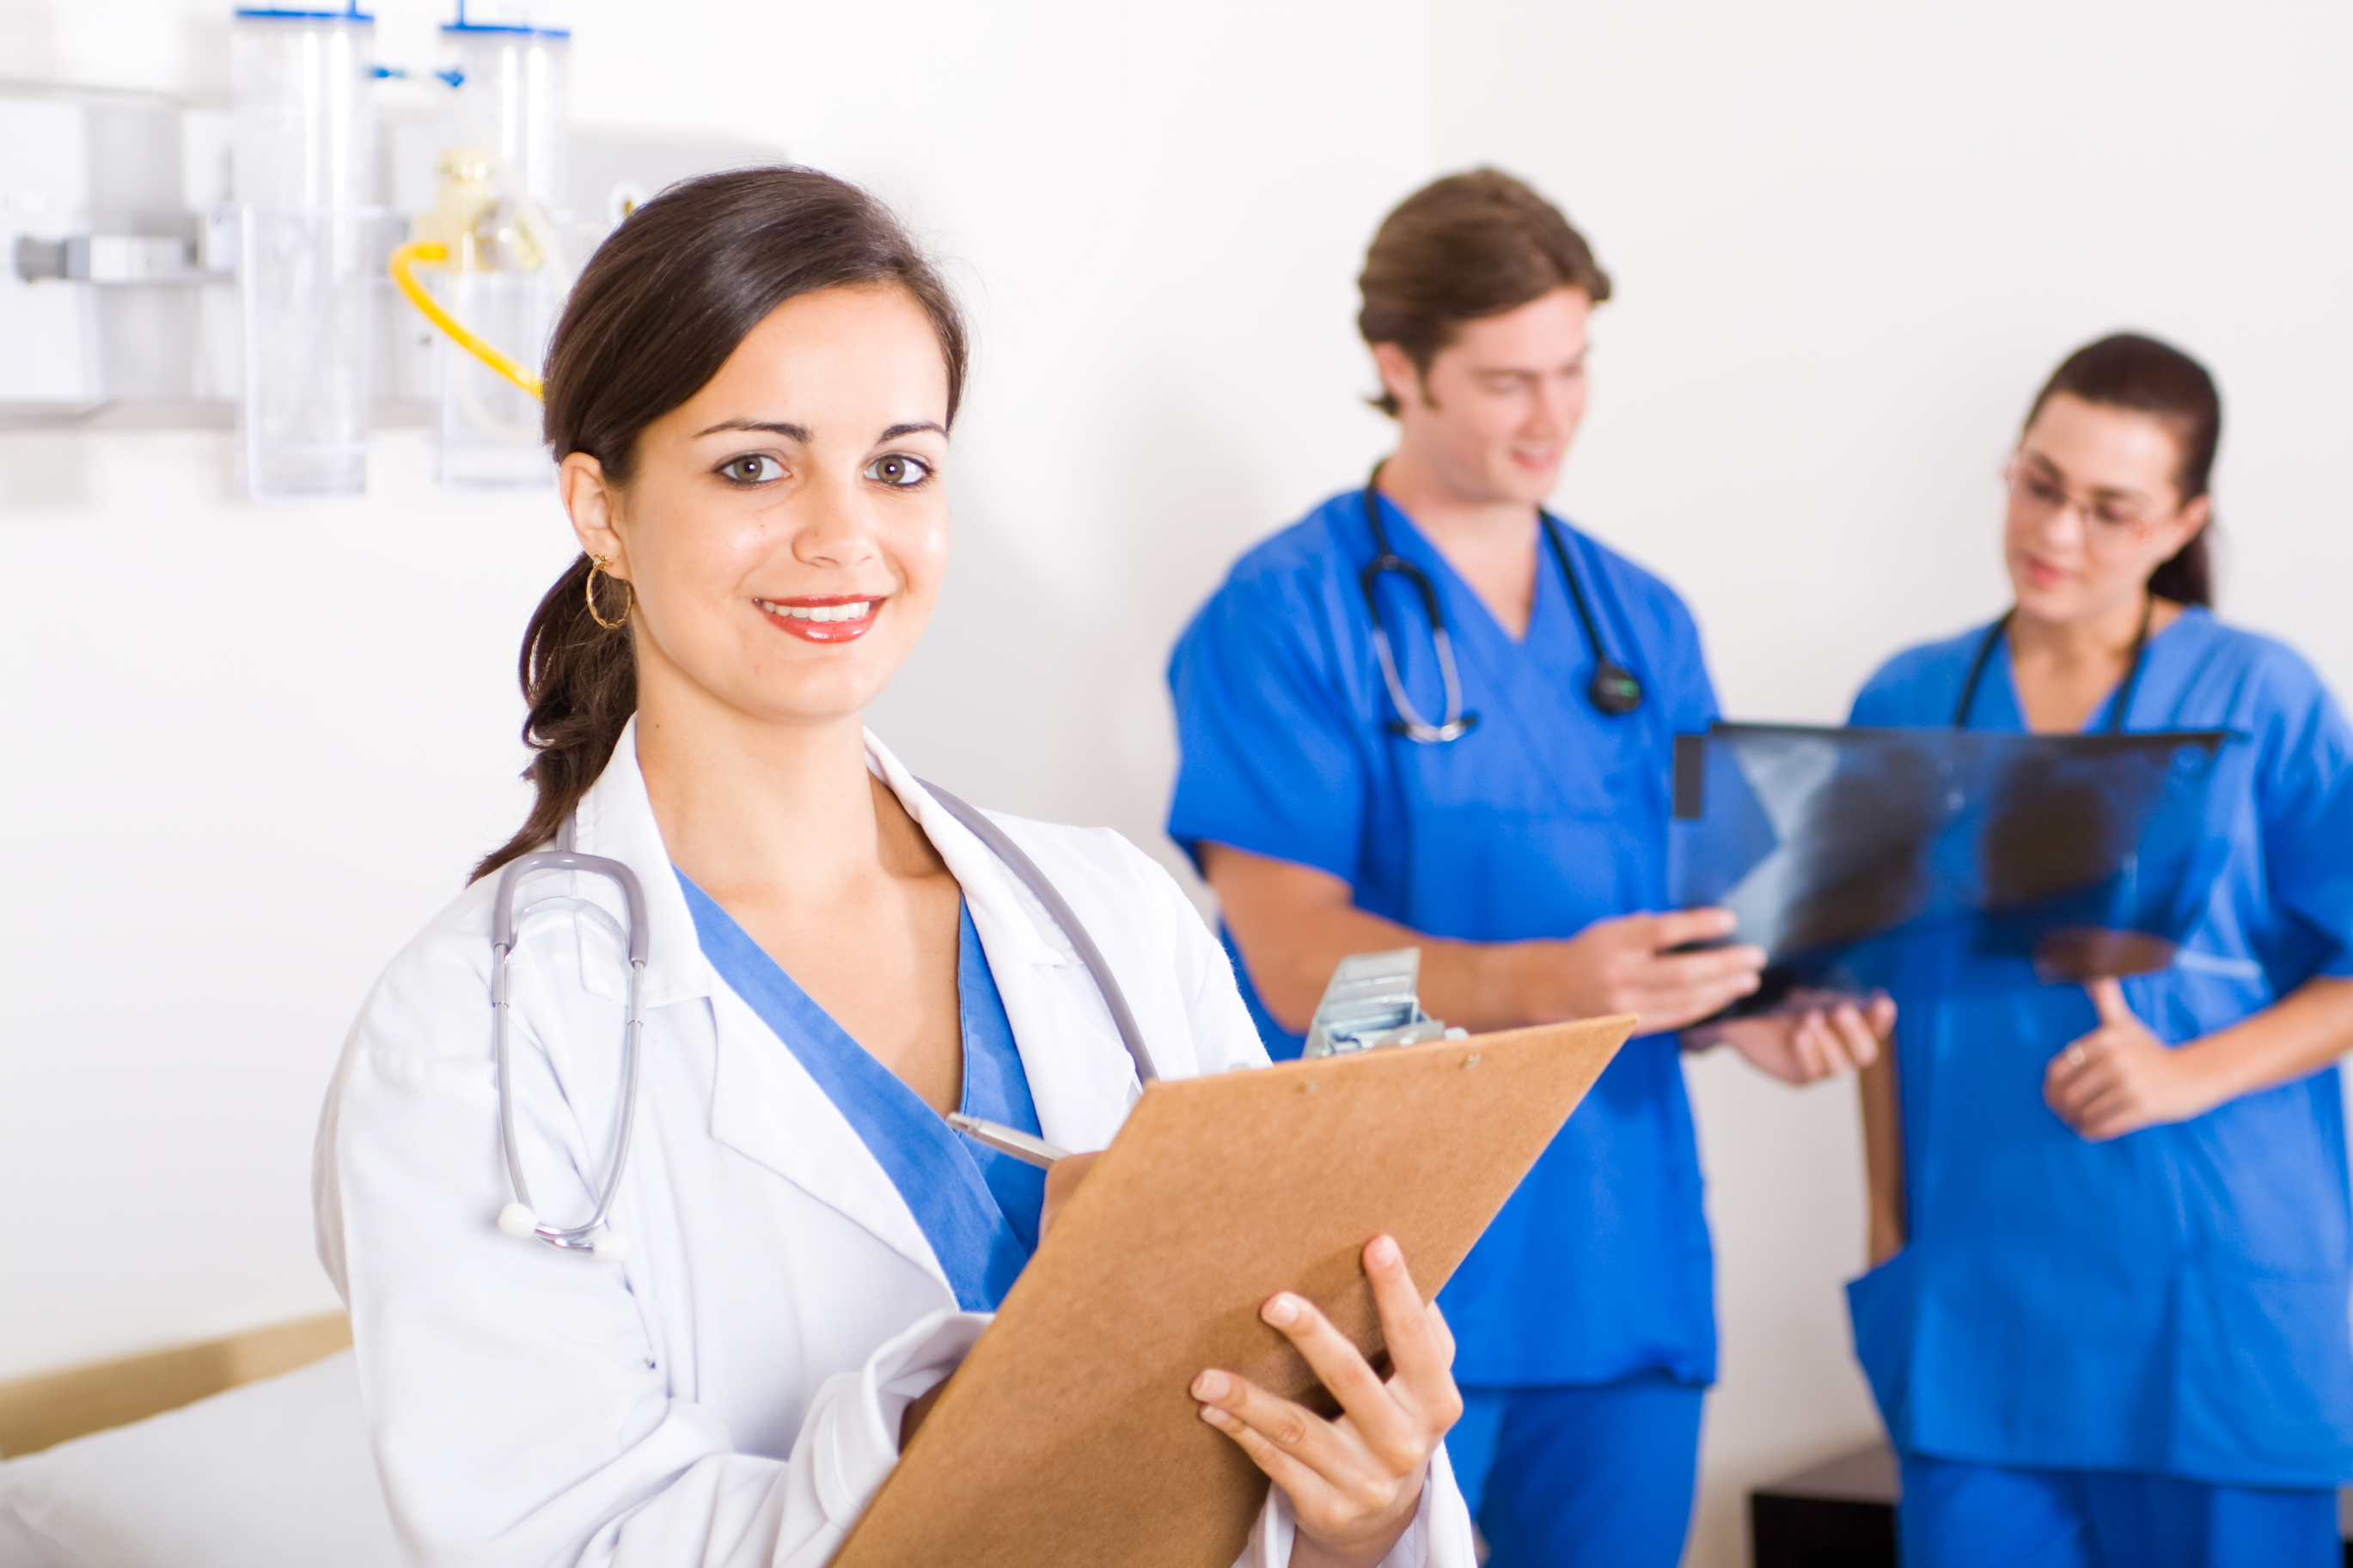 Can You Answer These 4 Sample USMLE Step 2 Practice Questions?